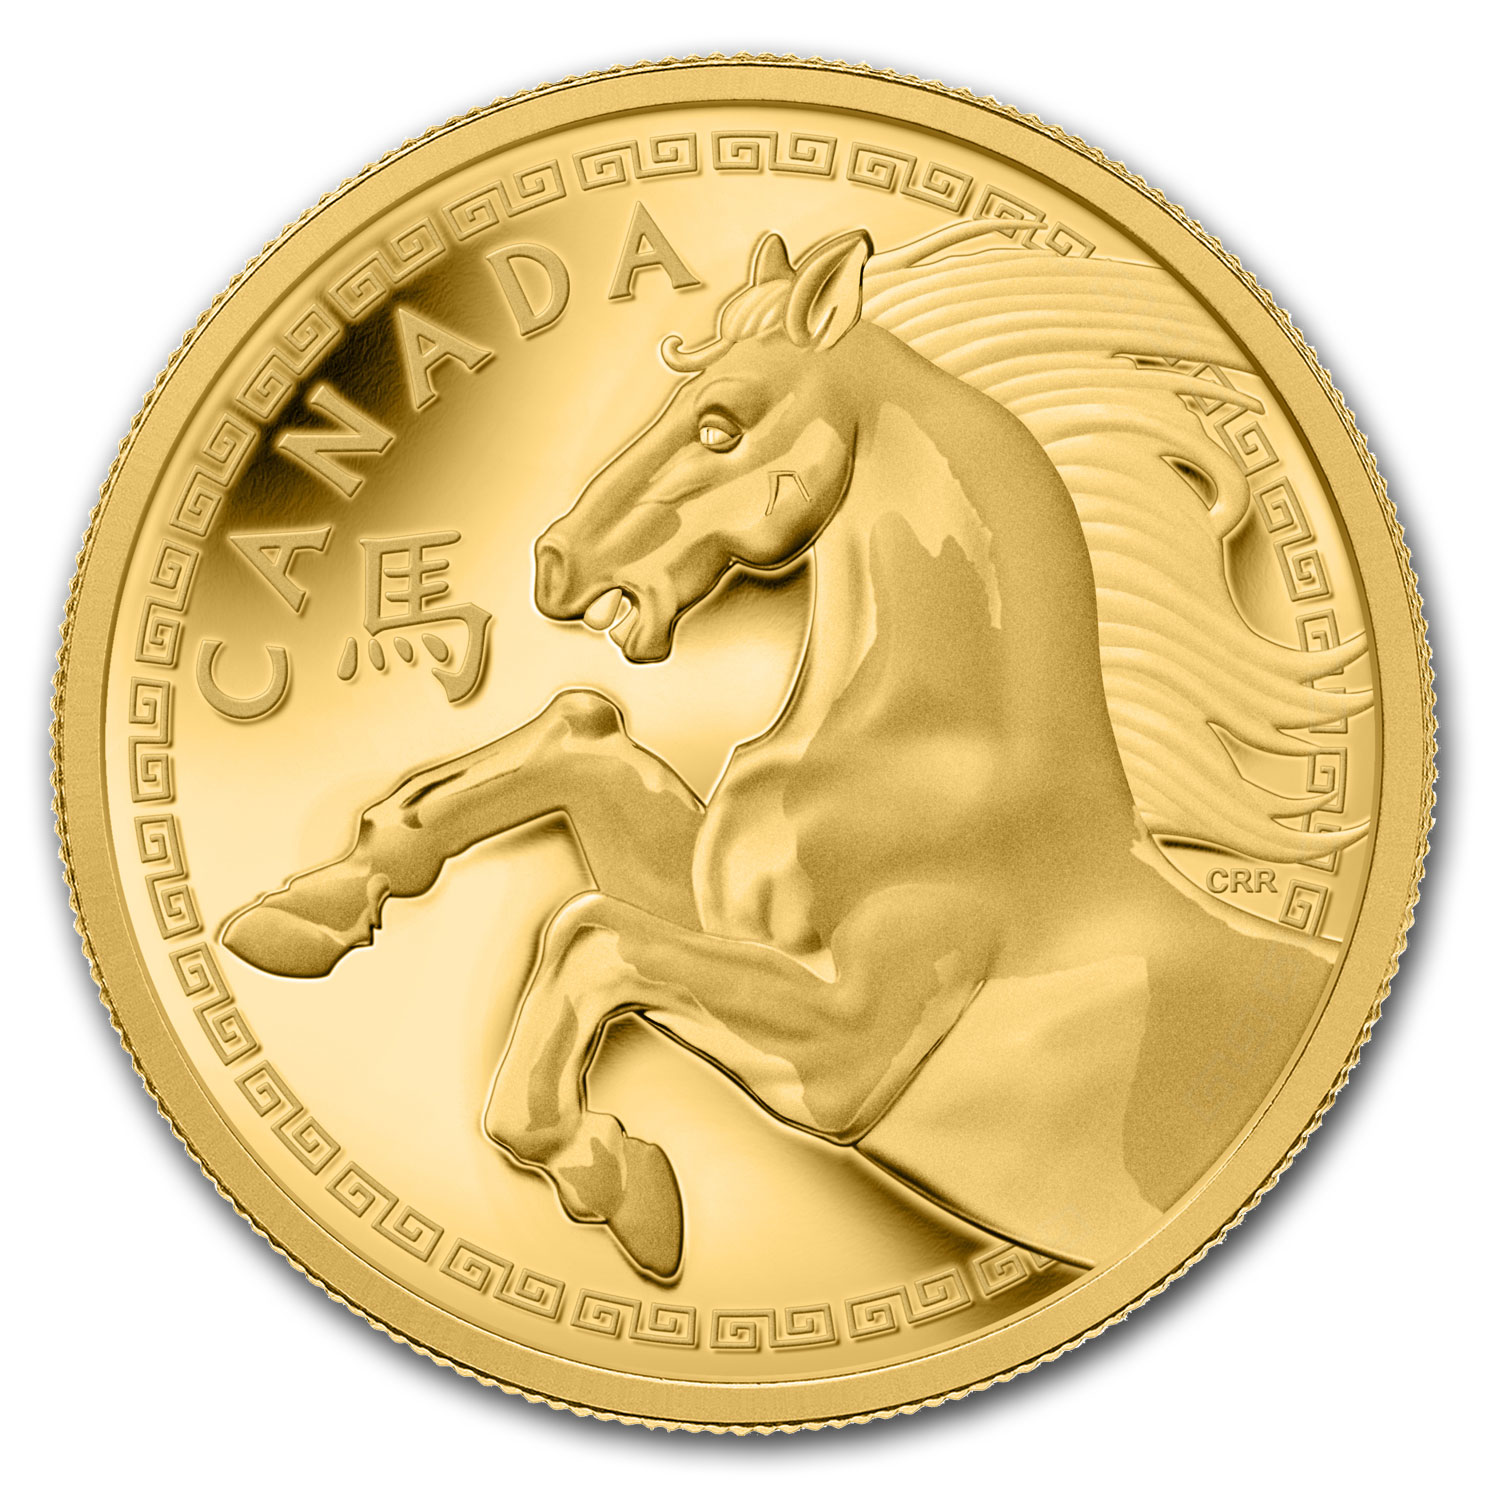 2014 Gold 1 Kilo Canadian $2,500 Year of the Horse Proof